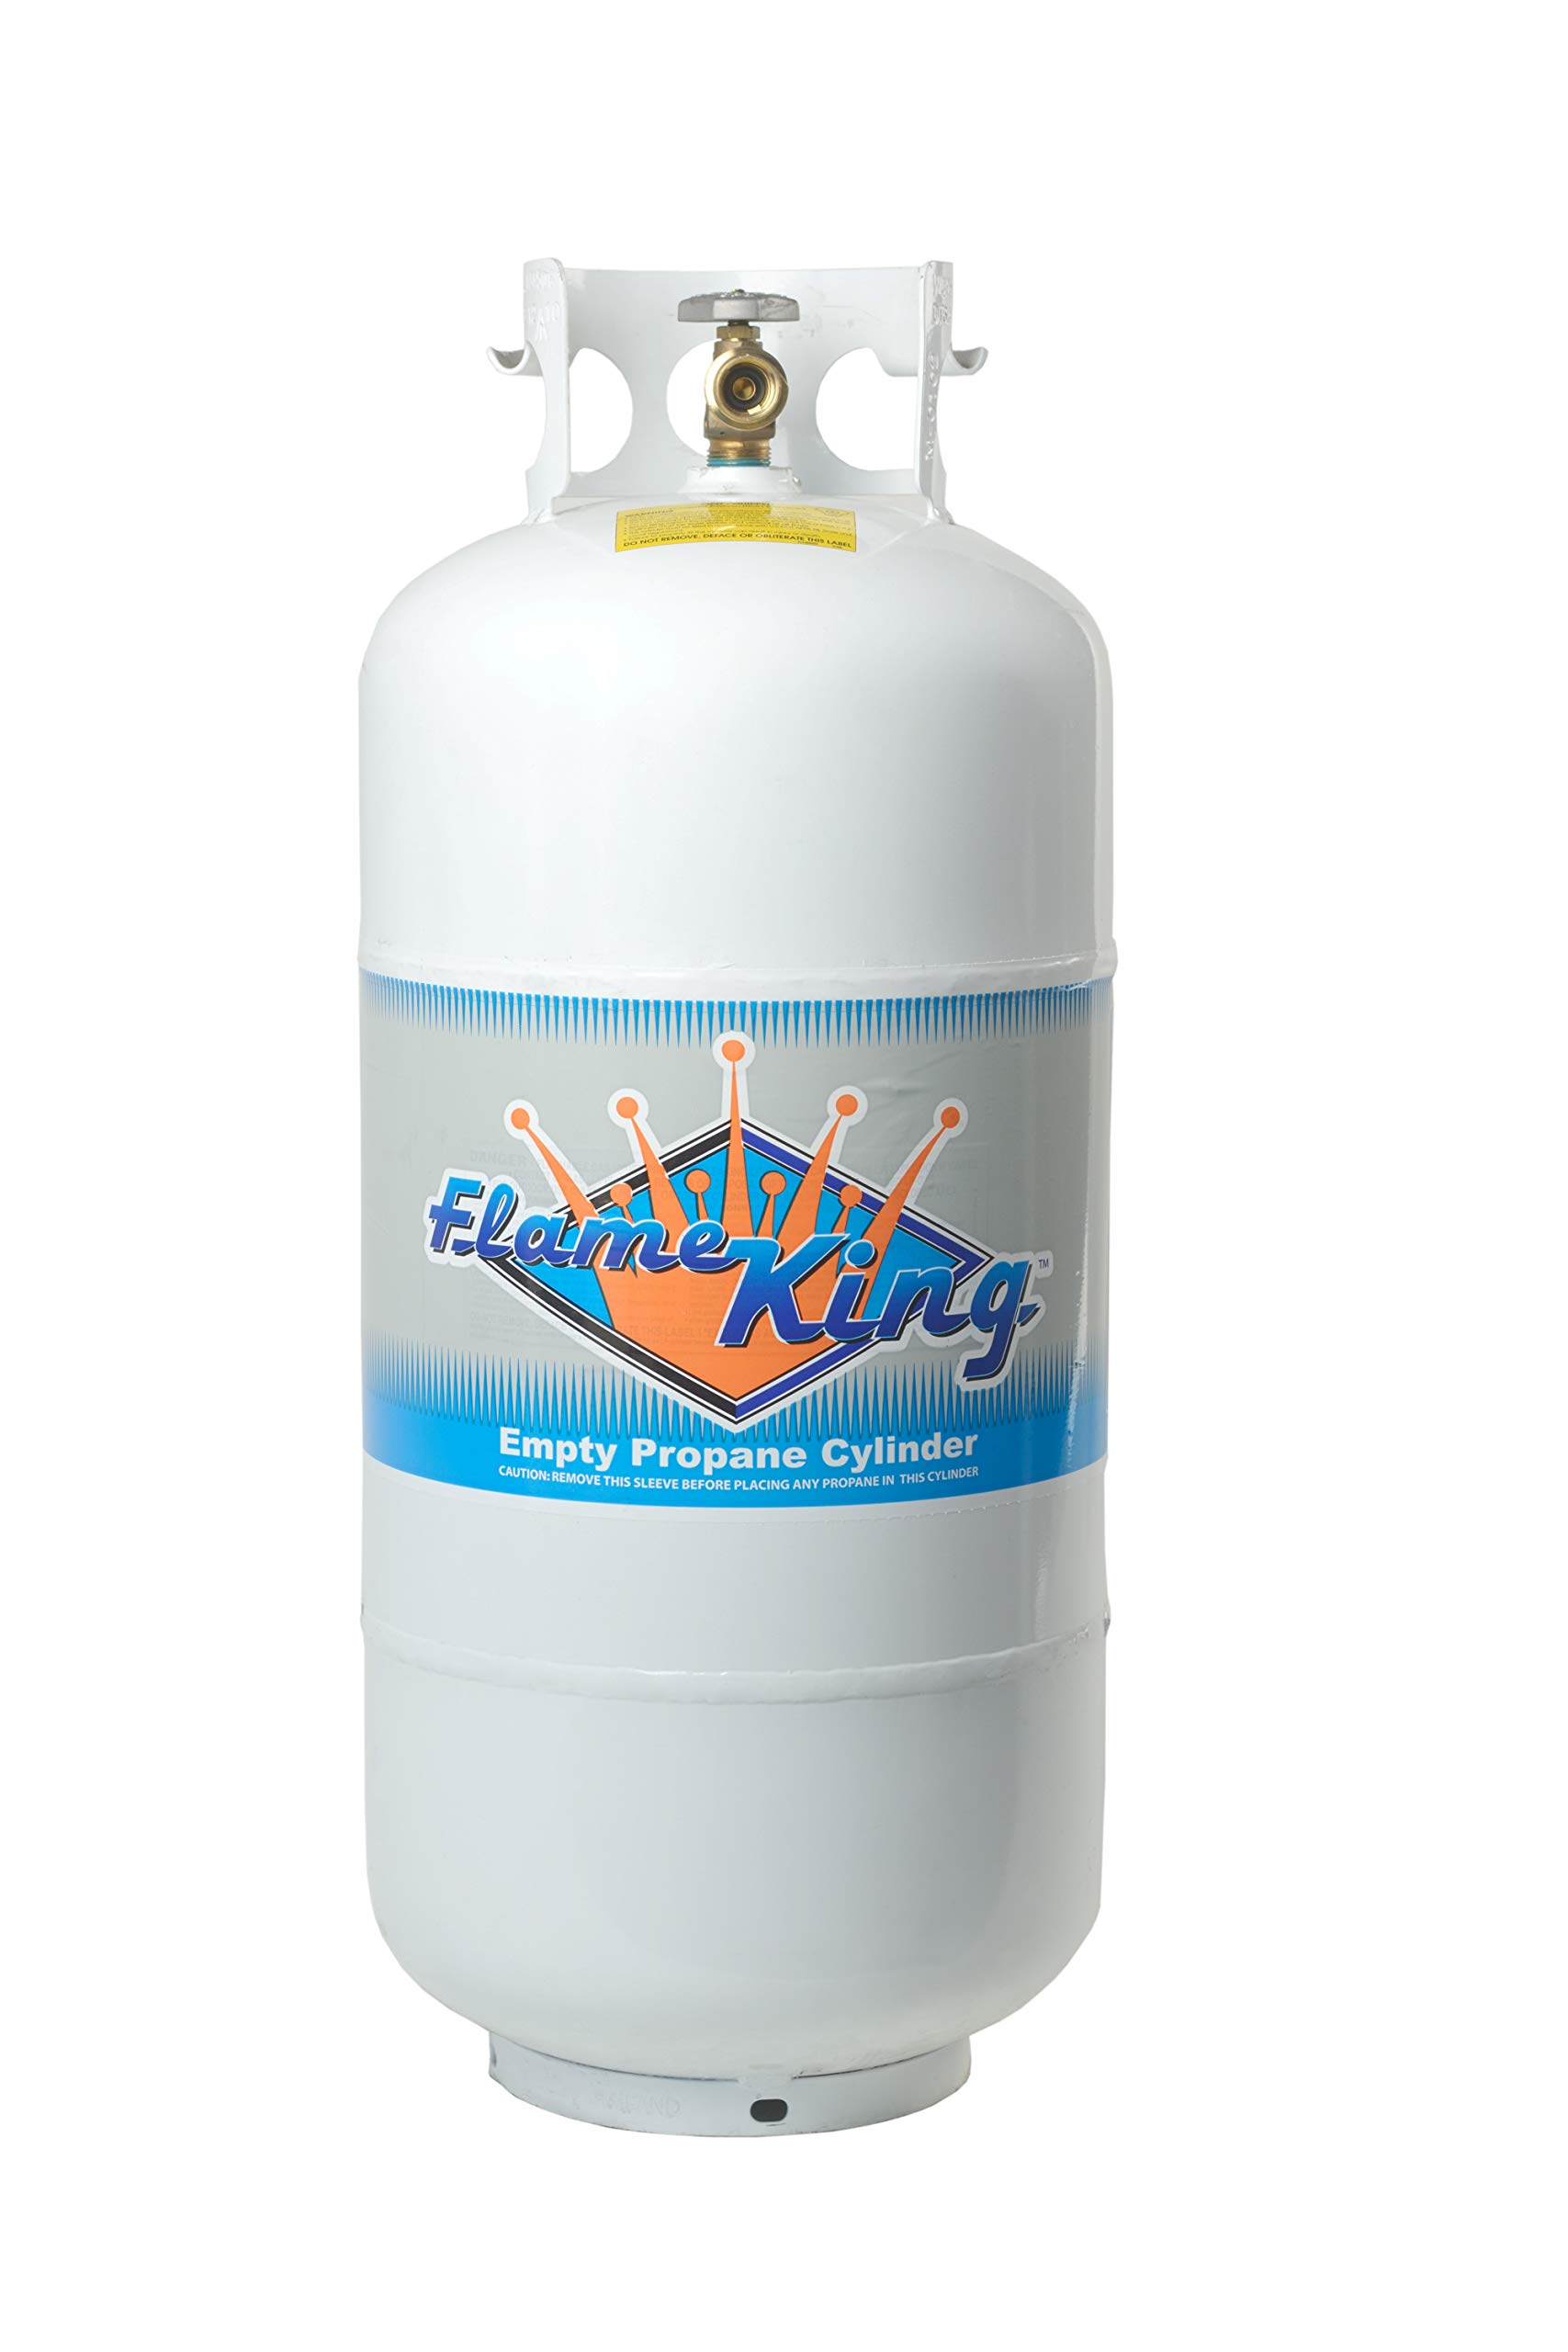 Flame King 40 lb Steel Propane Cylinder with Type 1 Overflow Protection Device Valve by Flame King